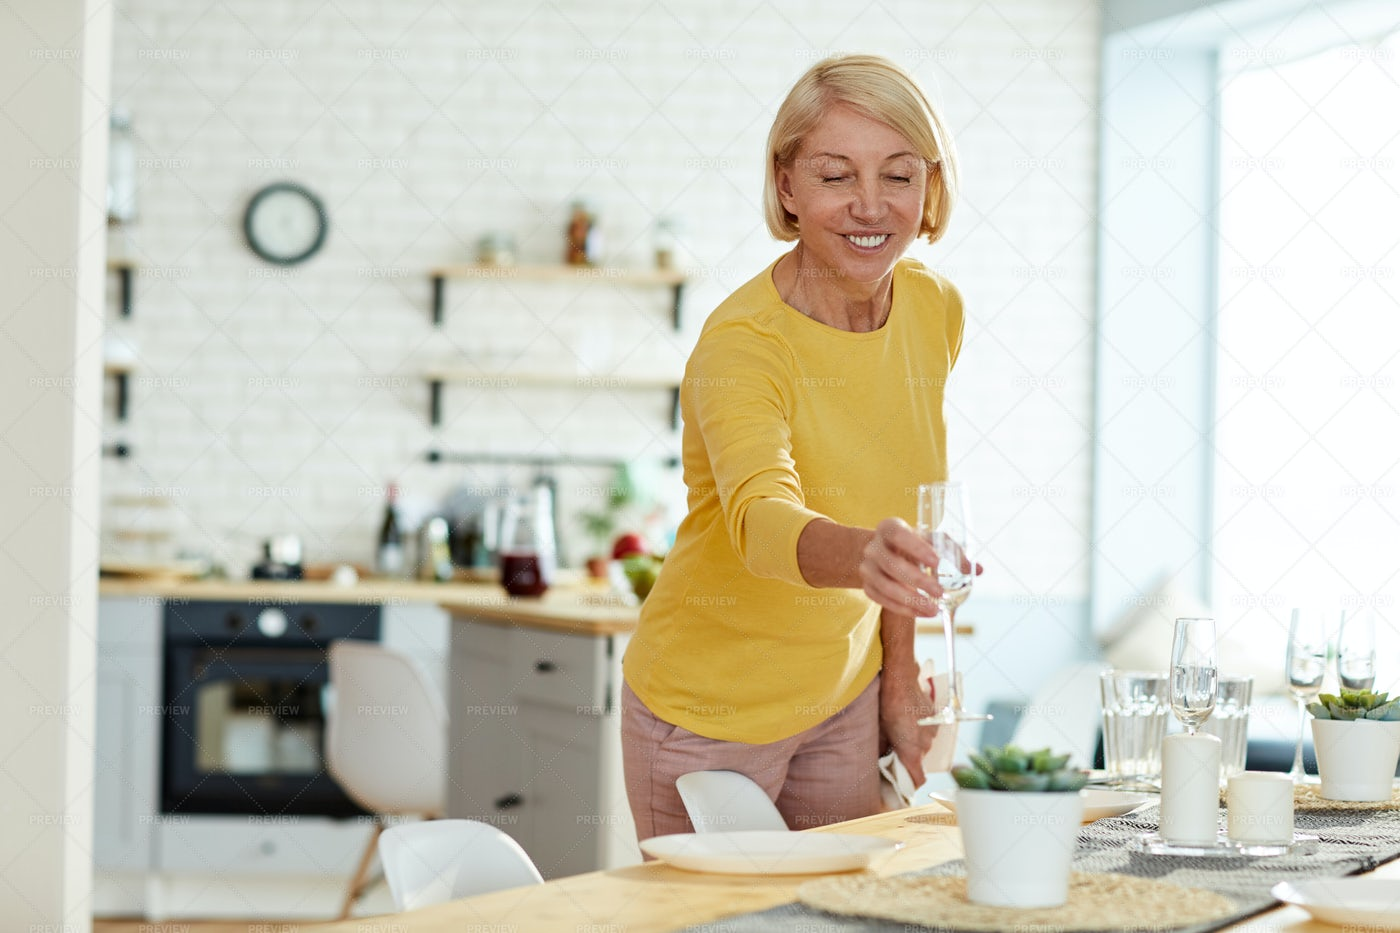 Smiling Woman Putting Flute On...: Stock Photos